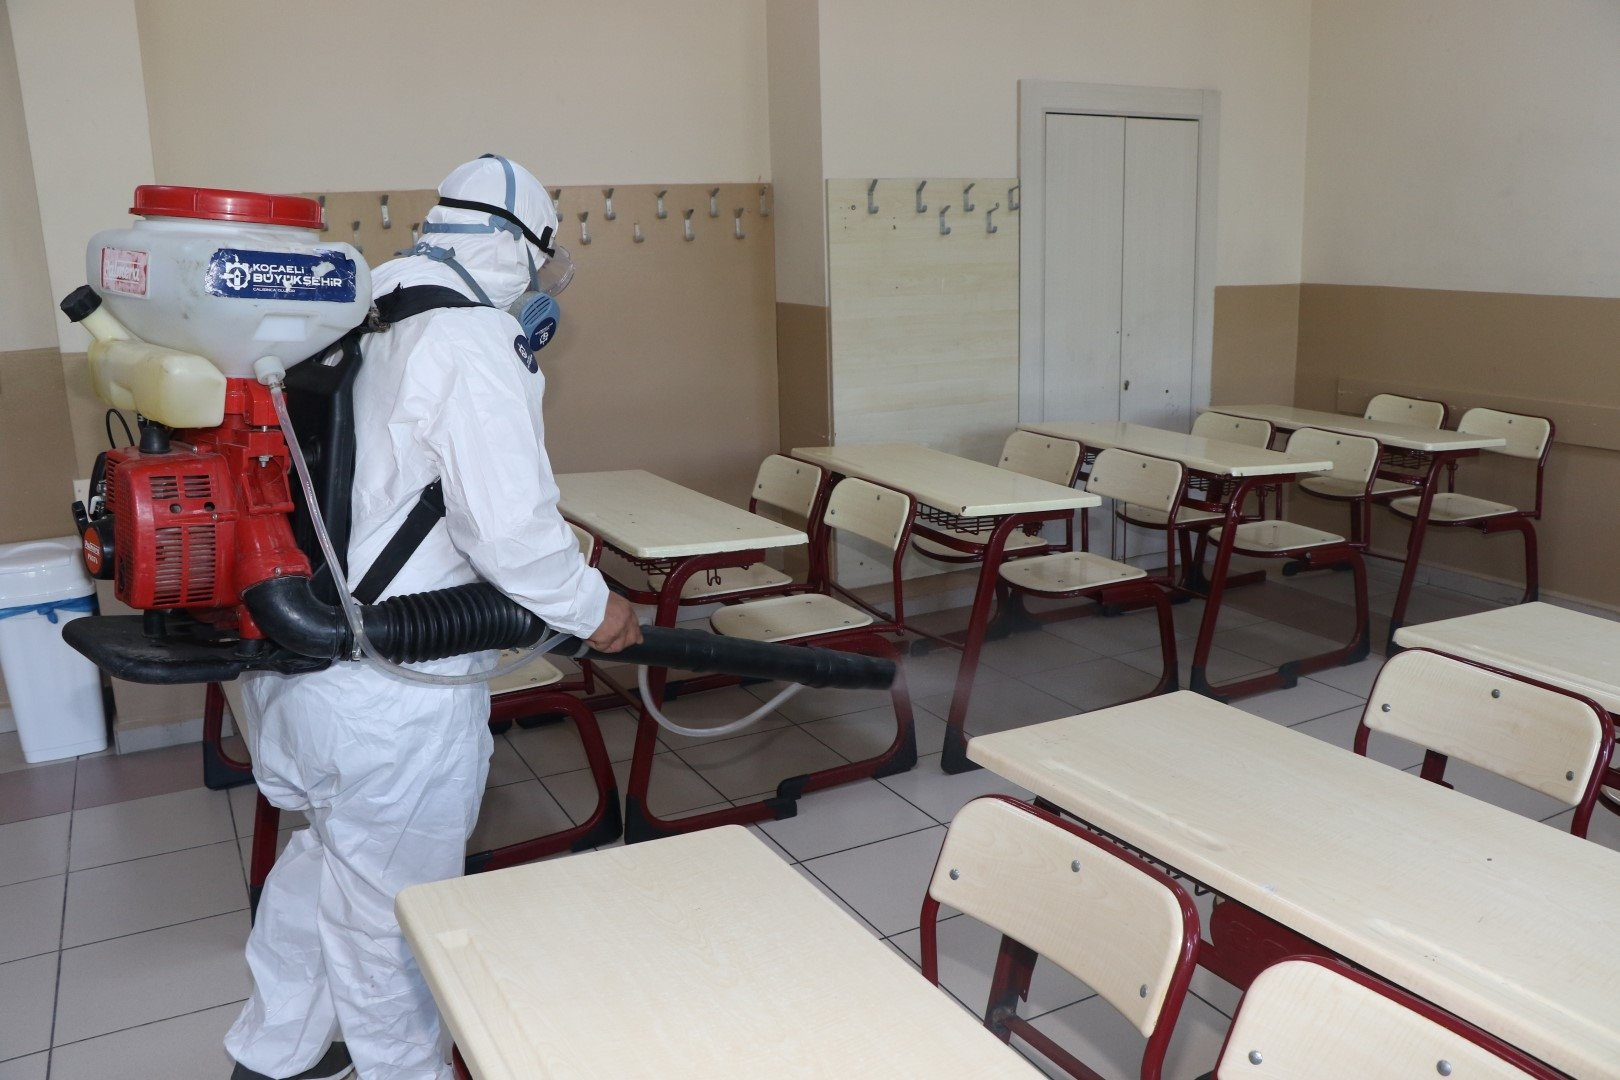 Closed Amid Pandemic Schools In Turkey To Reopen Gradually Cautiously Daily Sabah